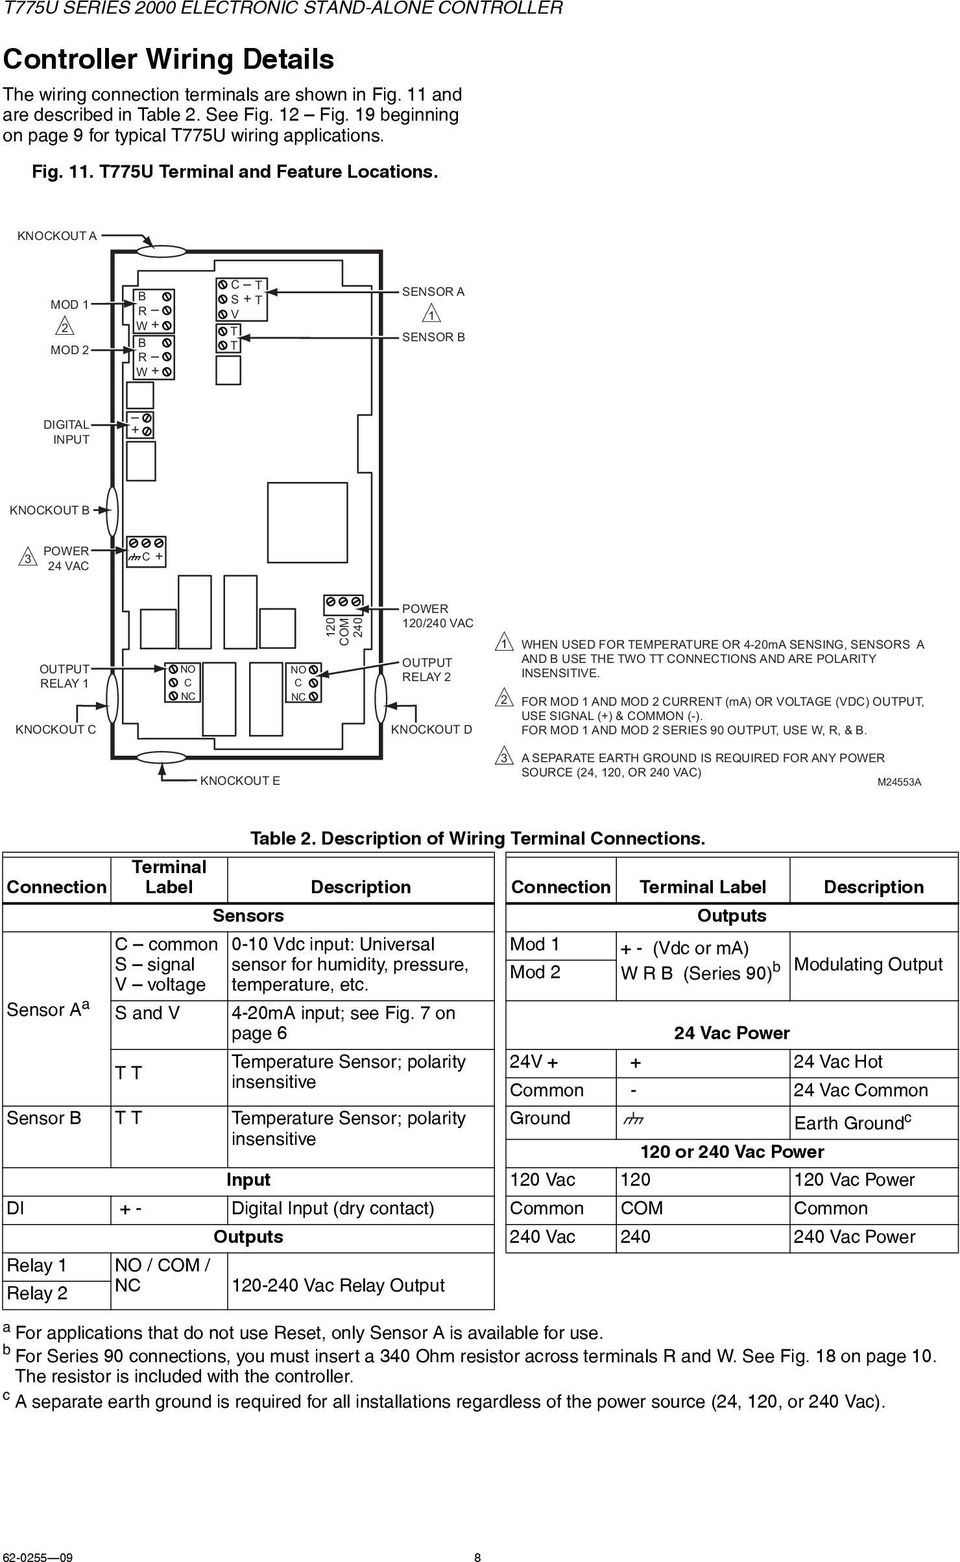 T775u Series 2000 Electronic Stand Alone Controller Pdf Fig 4 Rear Terminals Of A Midrange Kckout 2 Mod B R W C T S V 1 Sensor Digital 9 Wiring Application Examples Illustrate Typical For